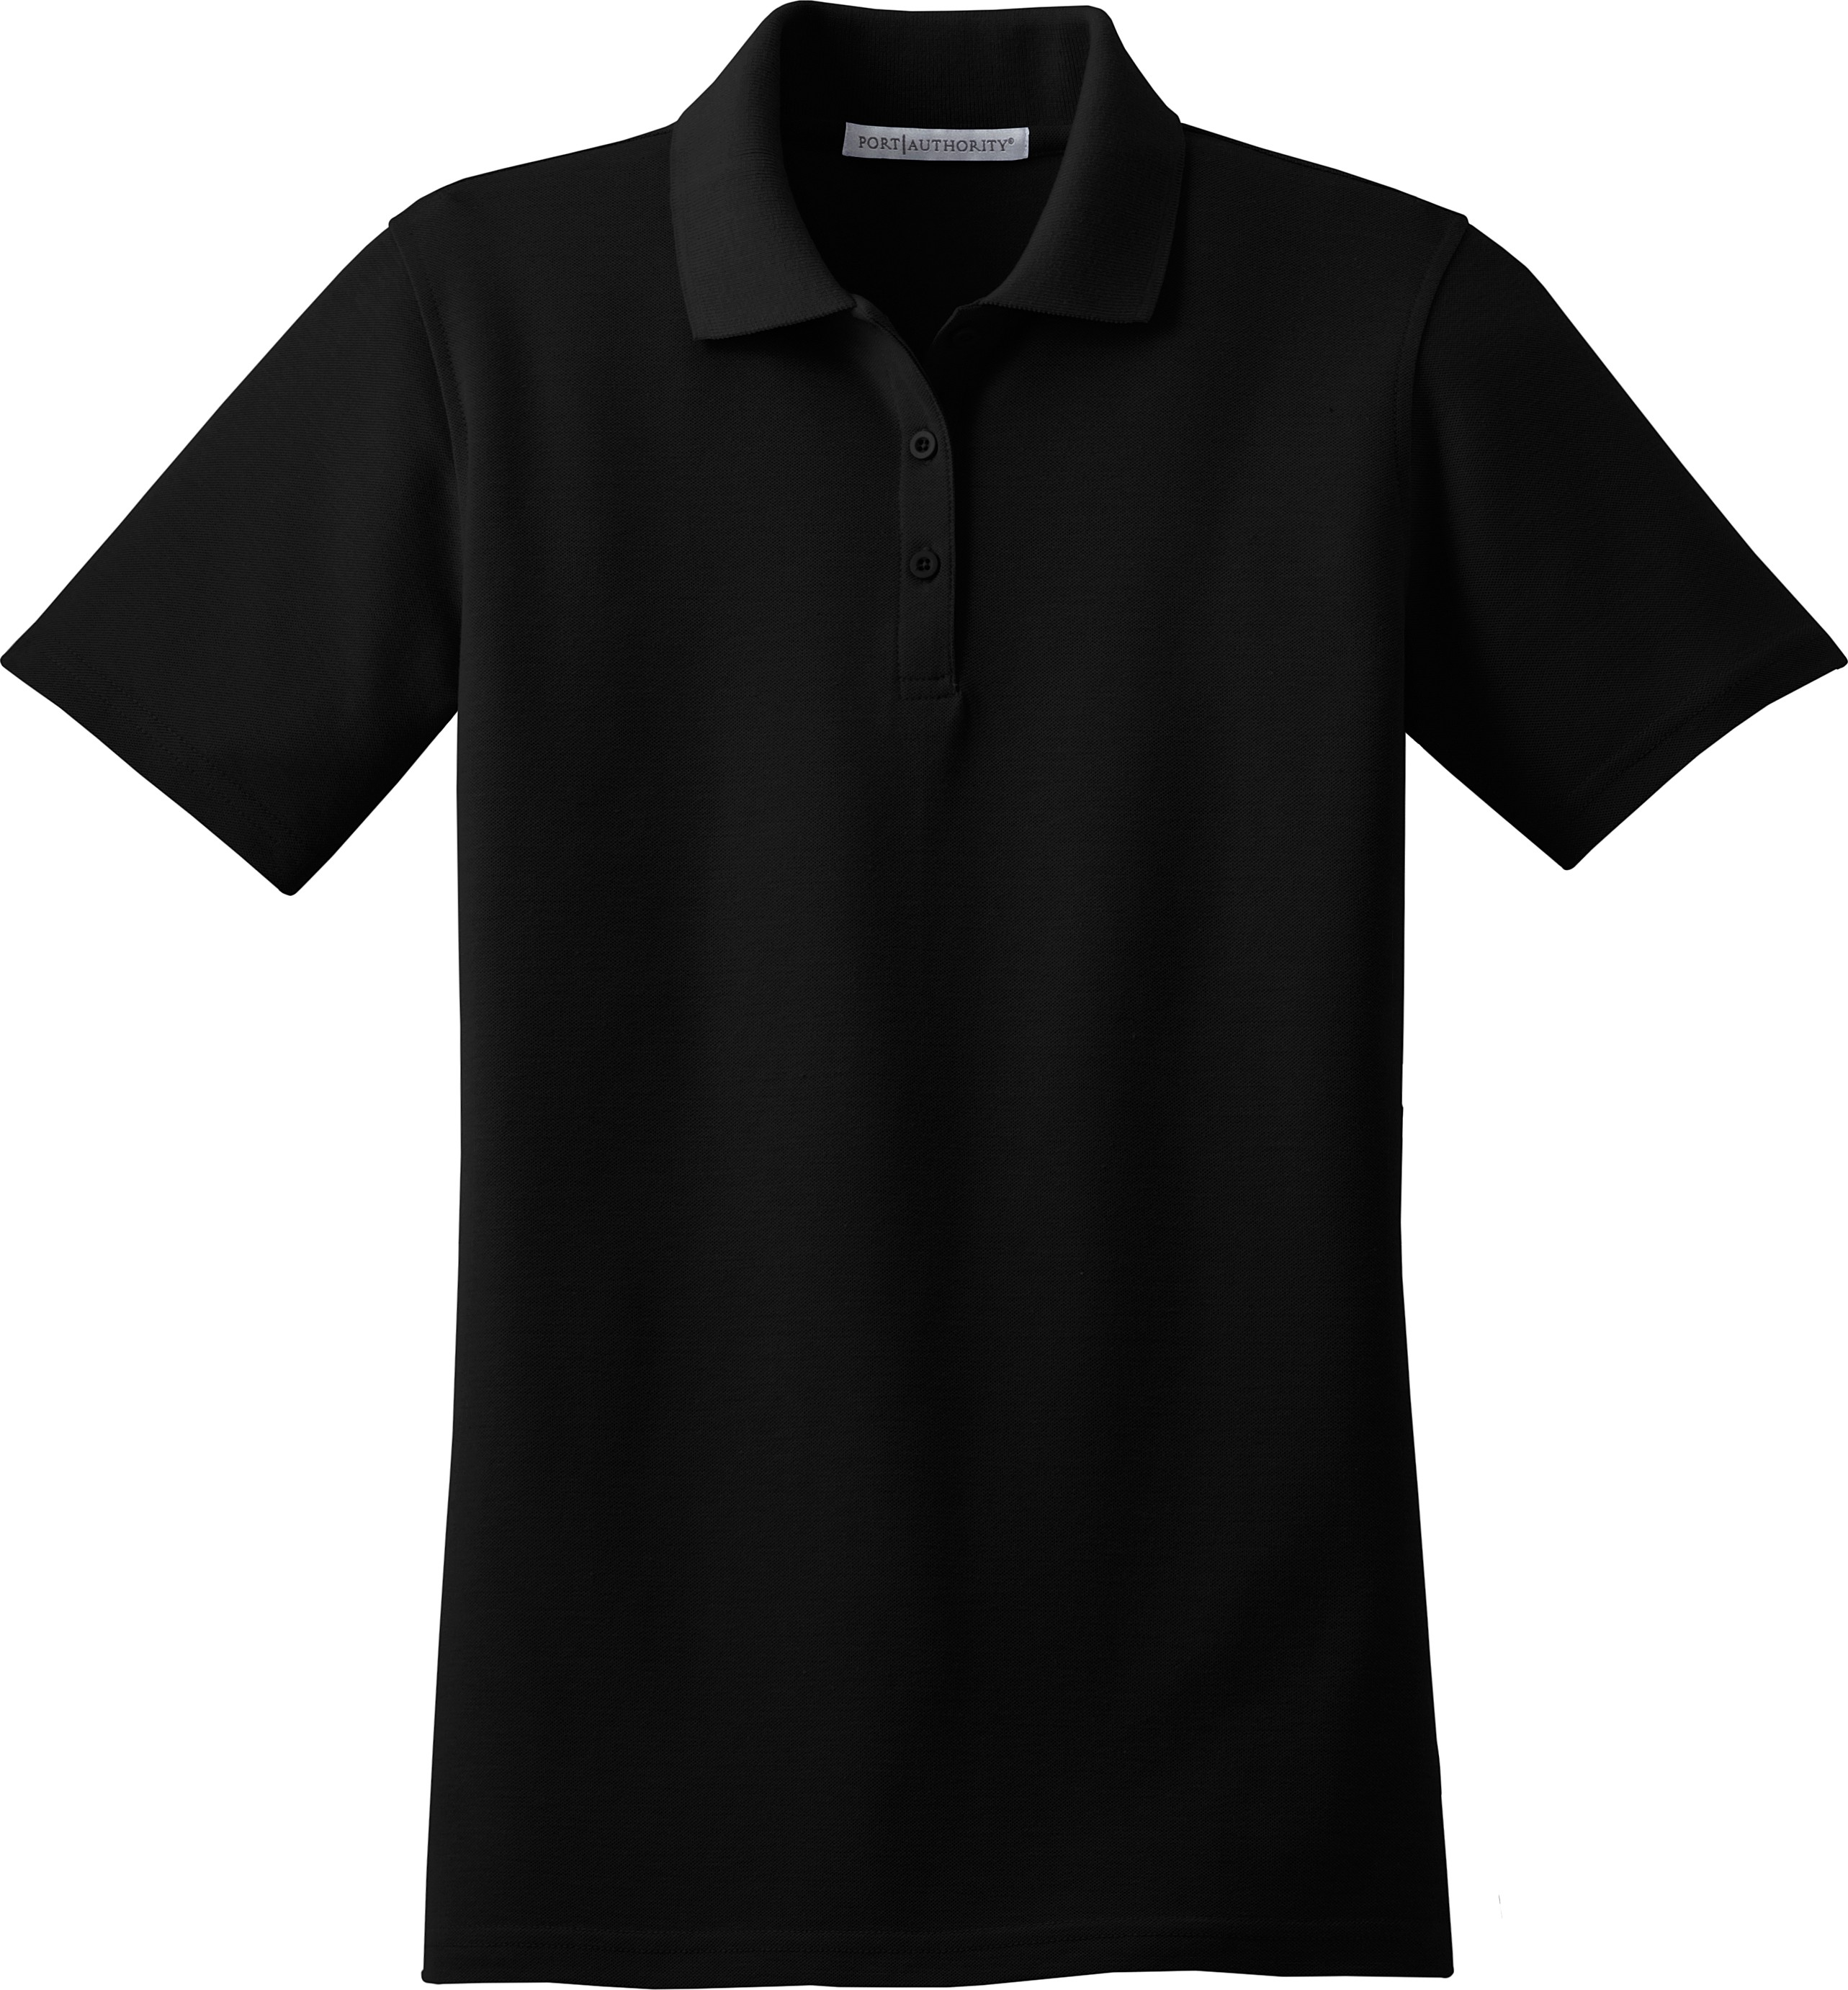 Black t shirt with collar front and back